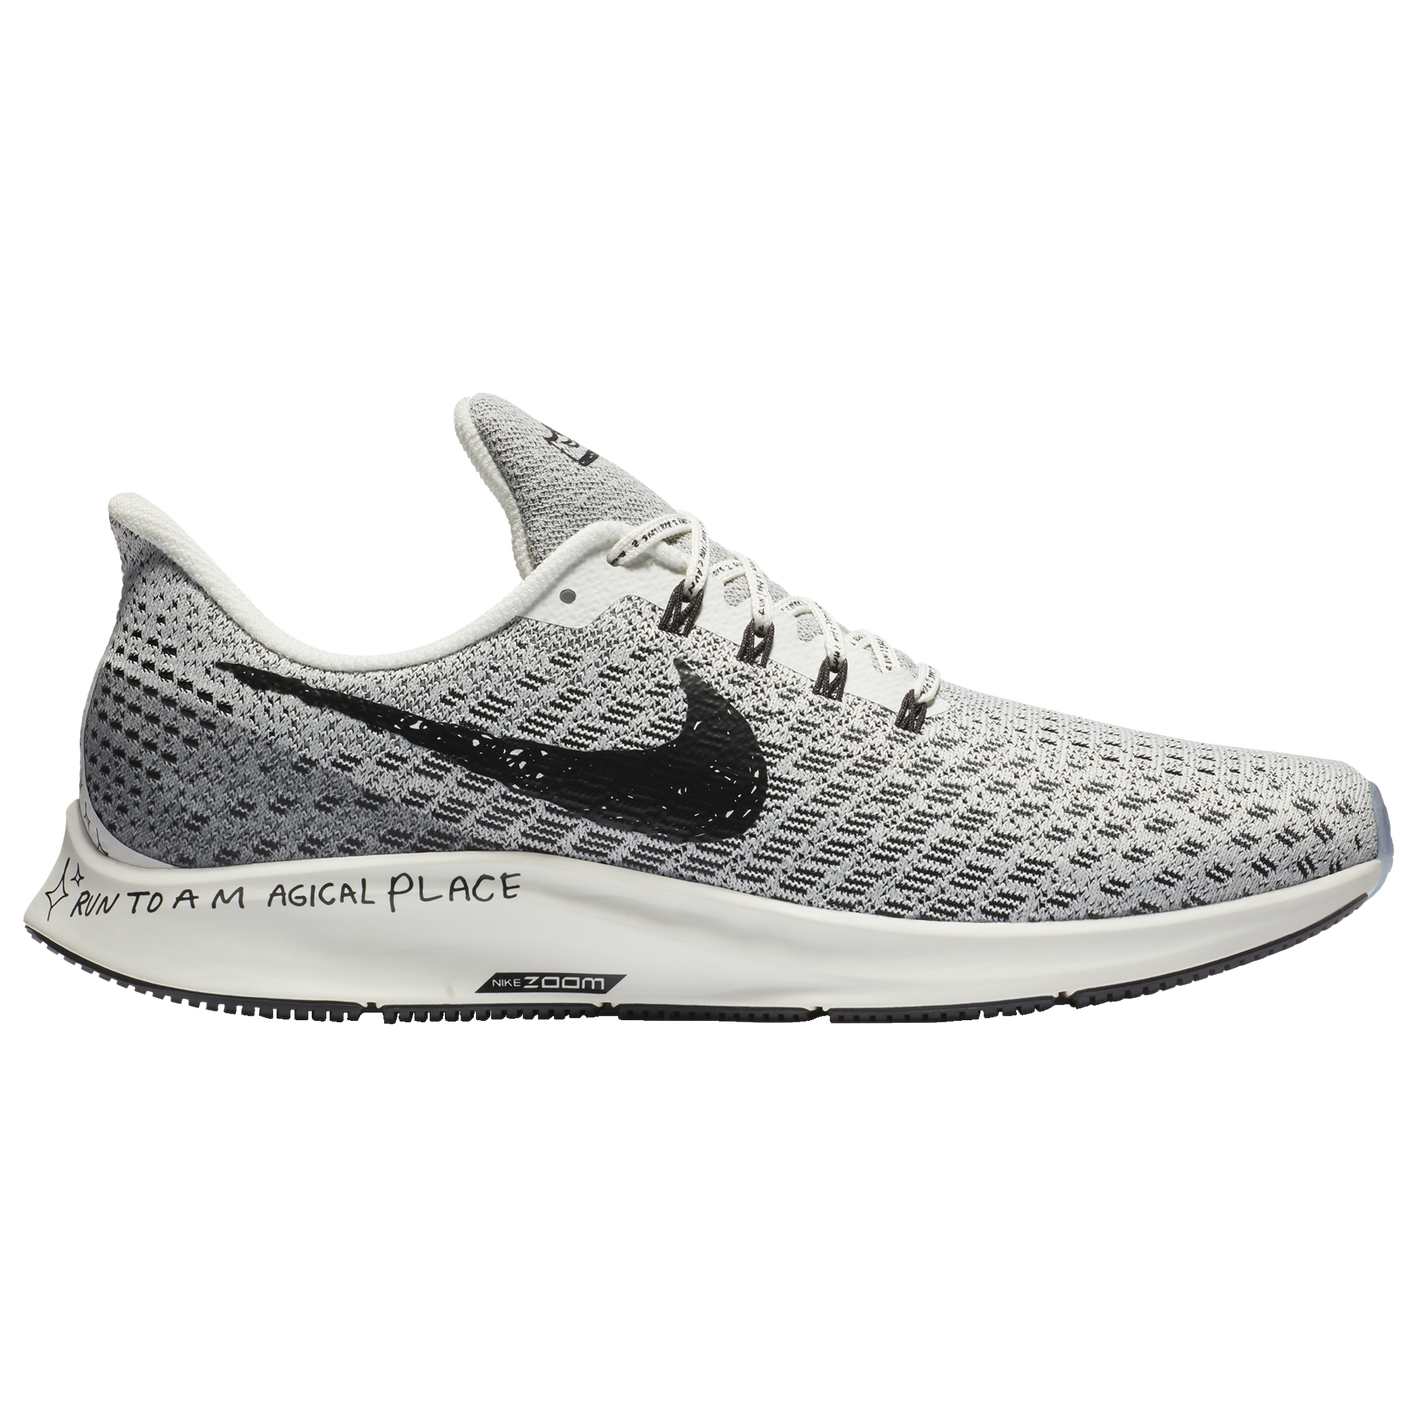 76990b56592 Nike Air Zoom Pegasus 35 - Men s - Running - Shoes - White Black